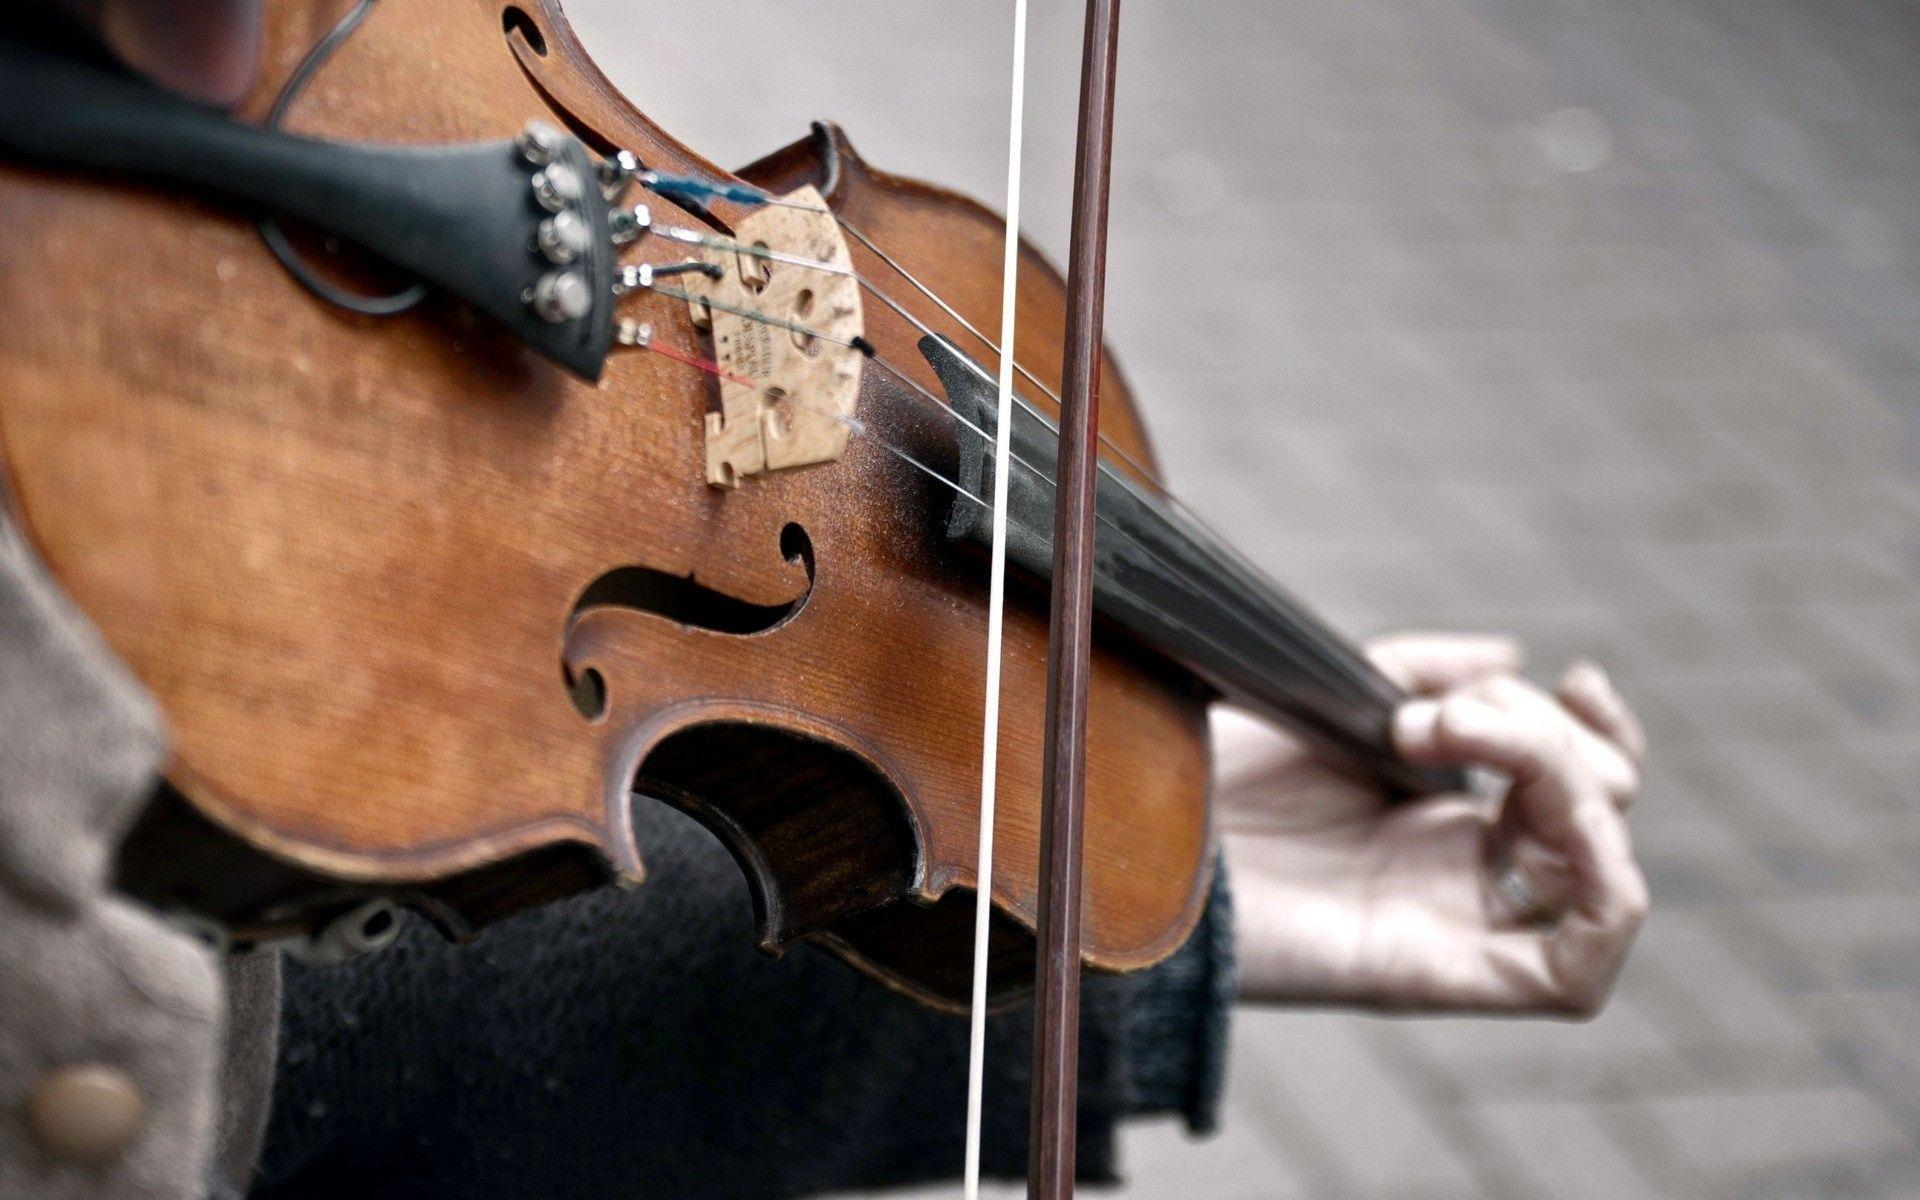 Violin Computer Wallpapers, Desktop Backgrounds 1920x1200 Id: 239611